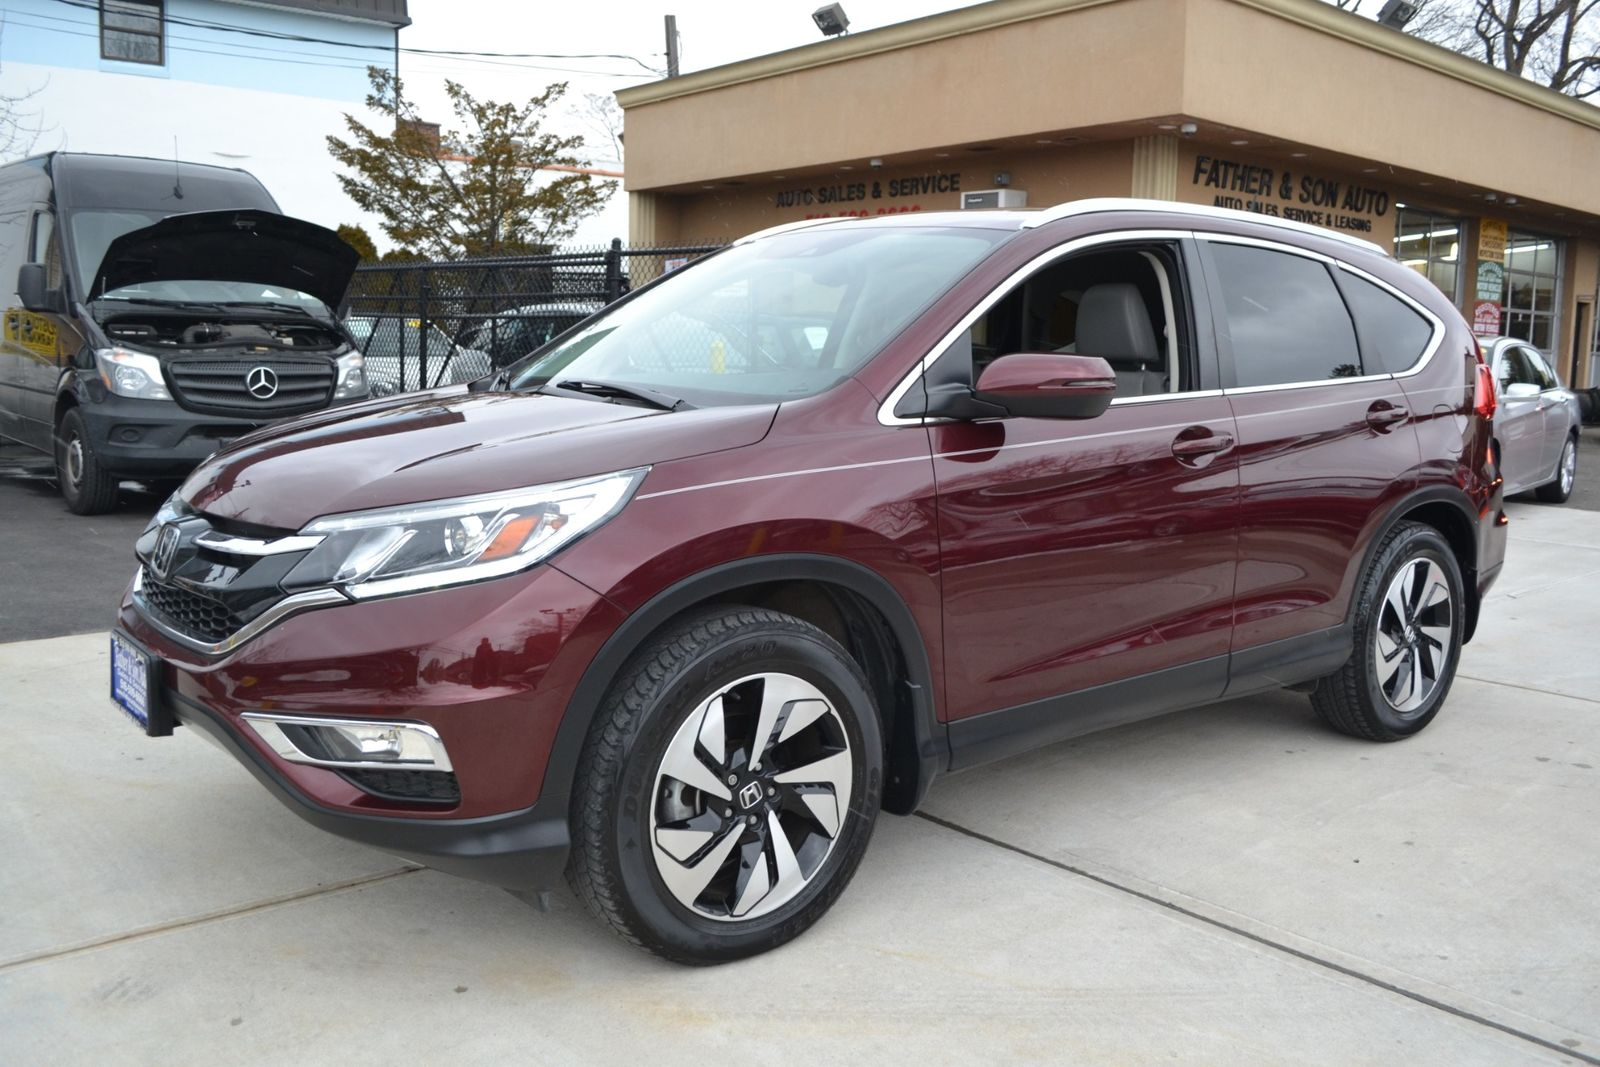 2016 honda cr v touring city new father son auto corp in lynbrook  [ 1600 x 1067 Pixel ]